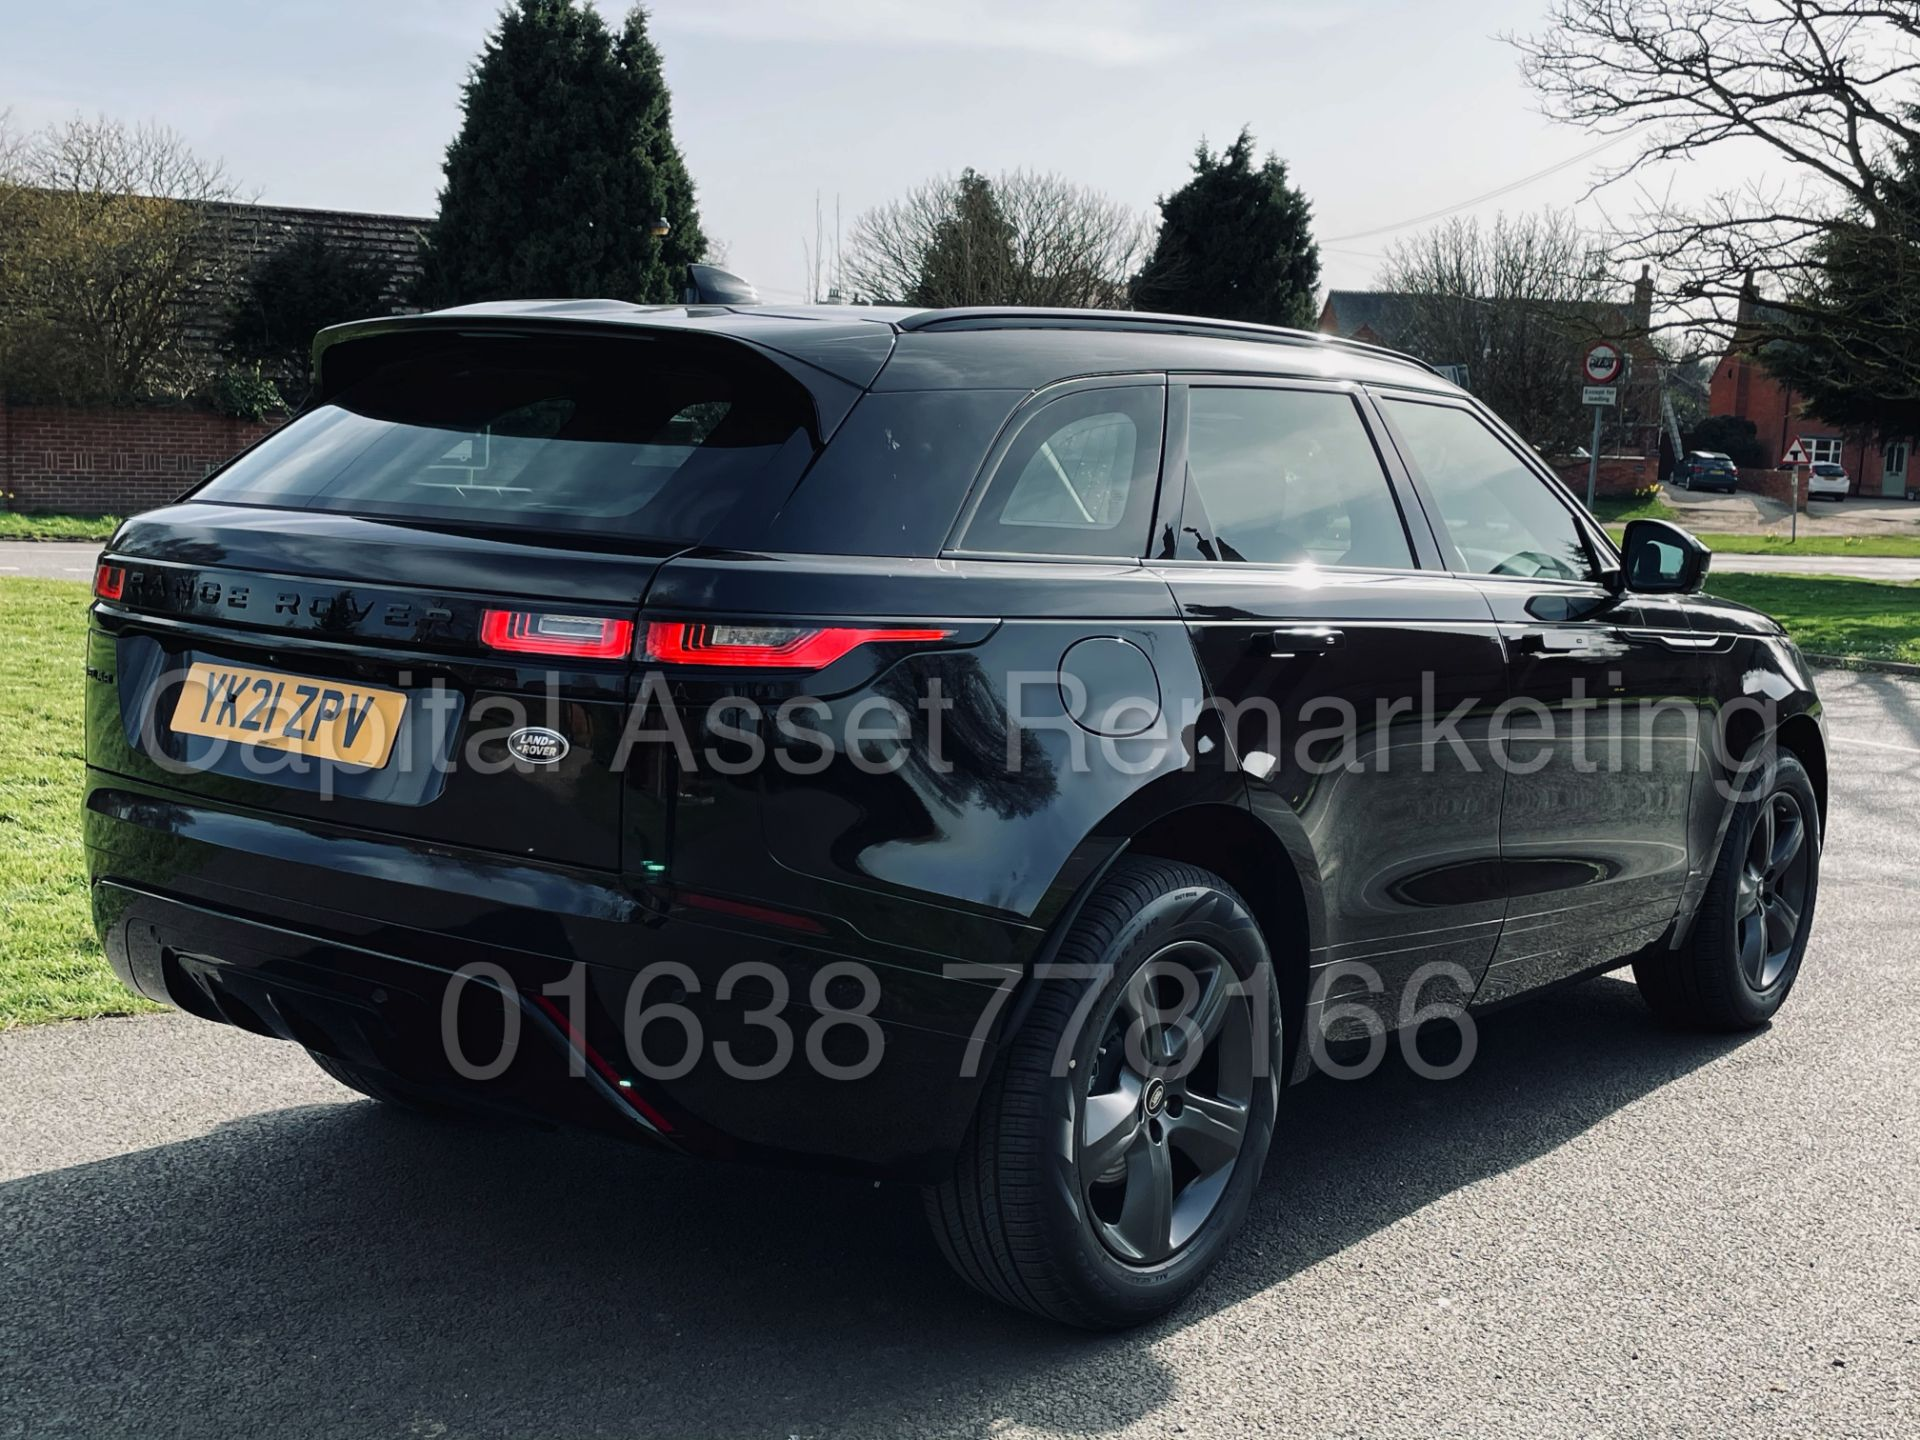 (On Sale) RANGE ROVER VELAR *R-DYNAMIC* SUV (2021) *8 SPEED AUTO - LEATHER* (DELIVERY MILES) - Image 12 of 50